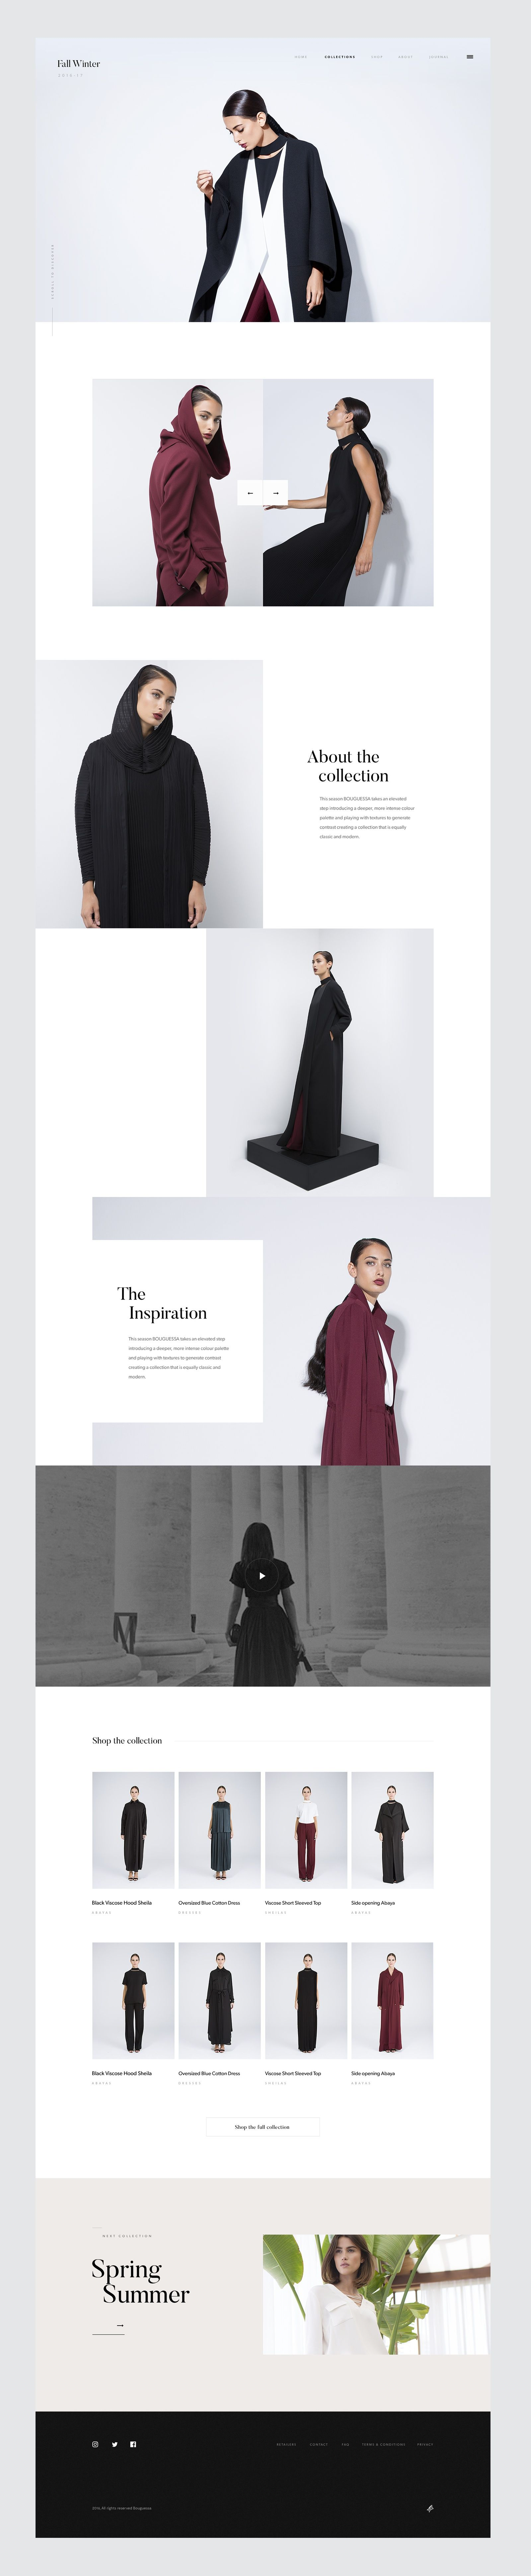 Art director and designer. I create and deliver digital products people experience on screen. This is a feed of my work. I am available for freelance.